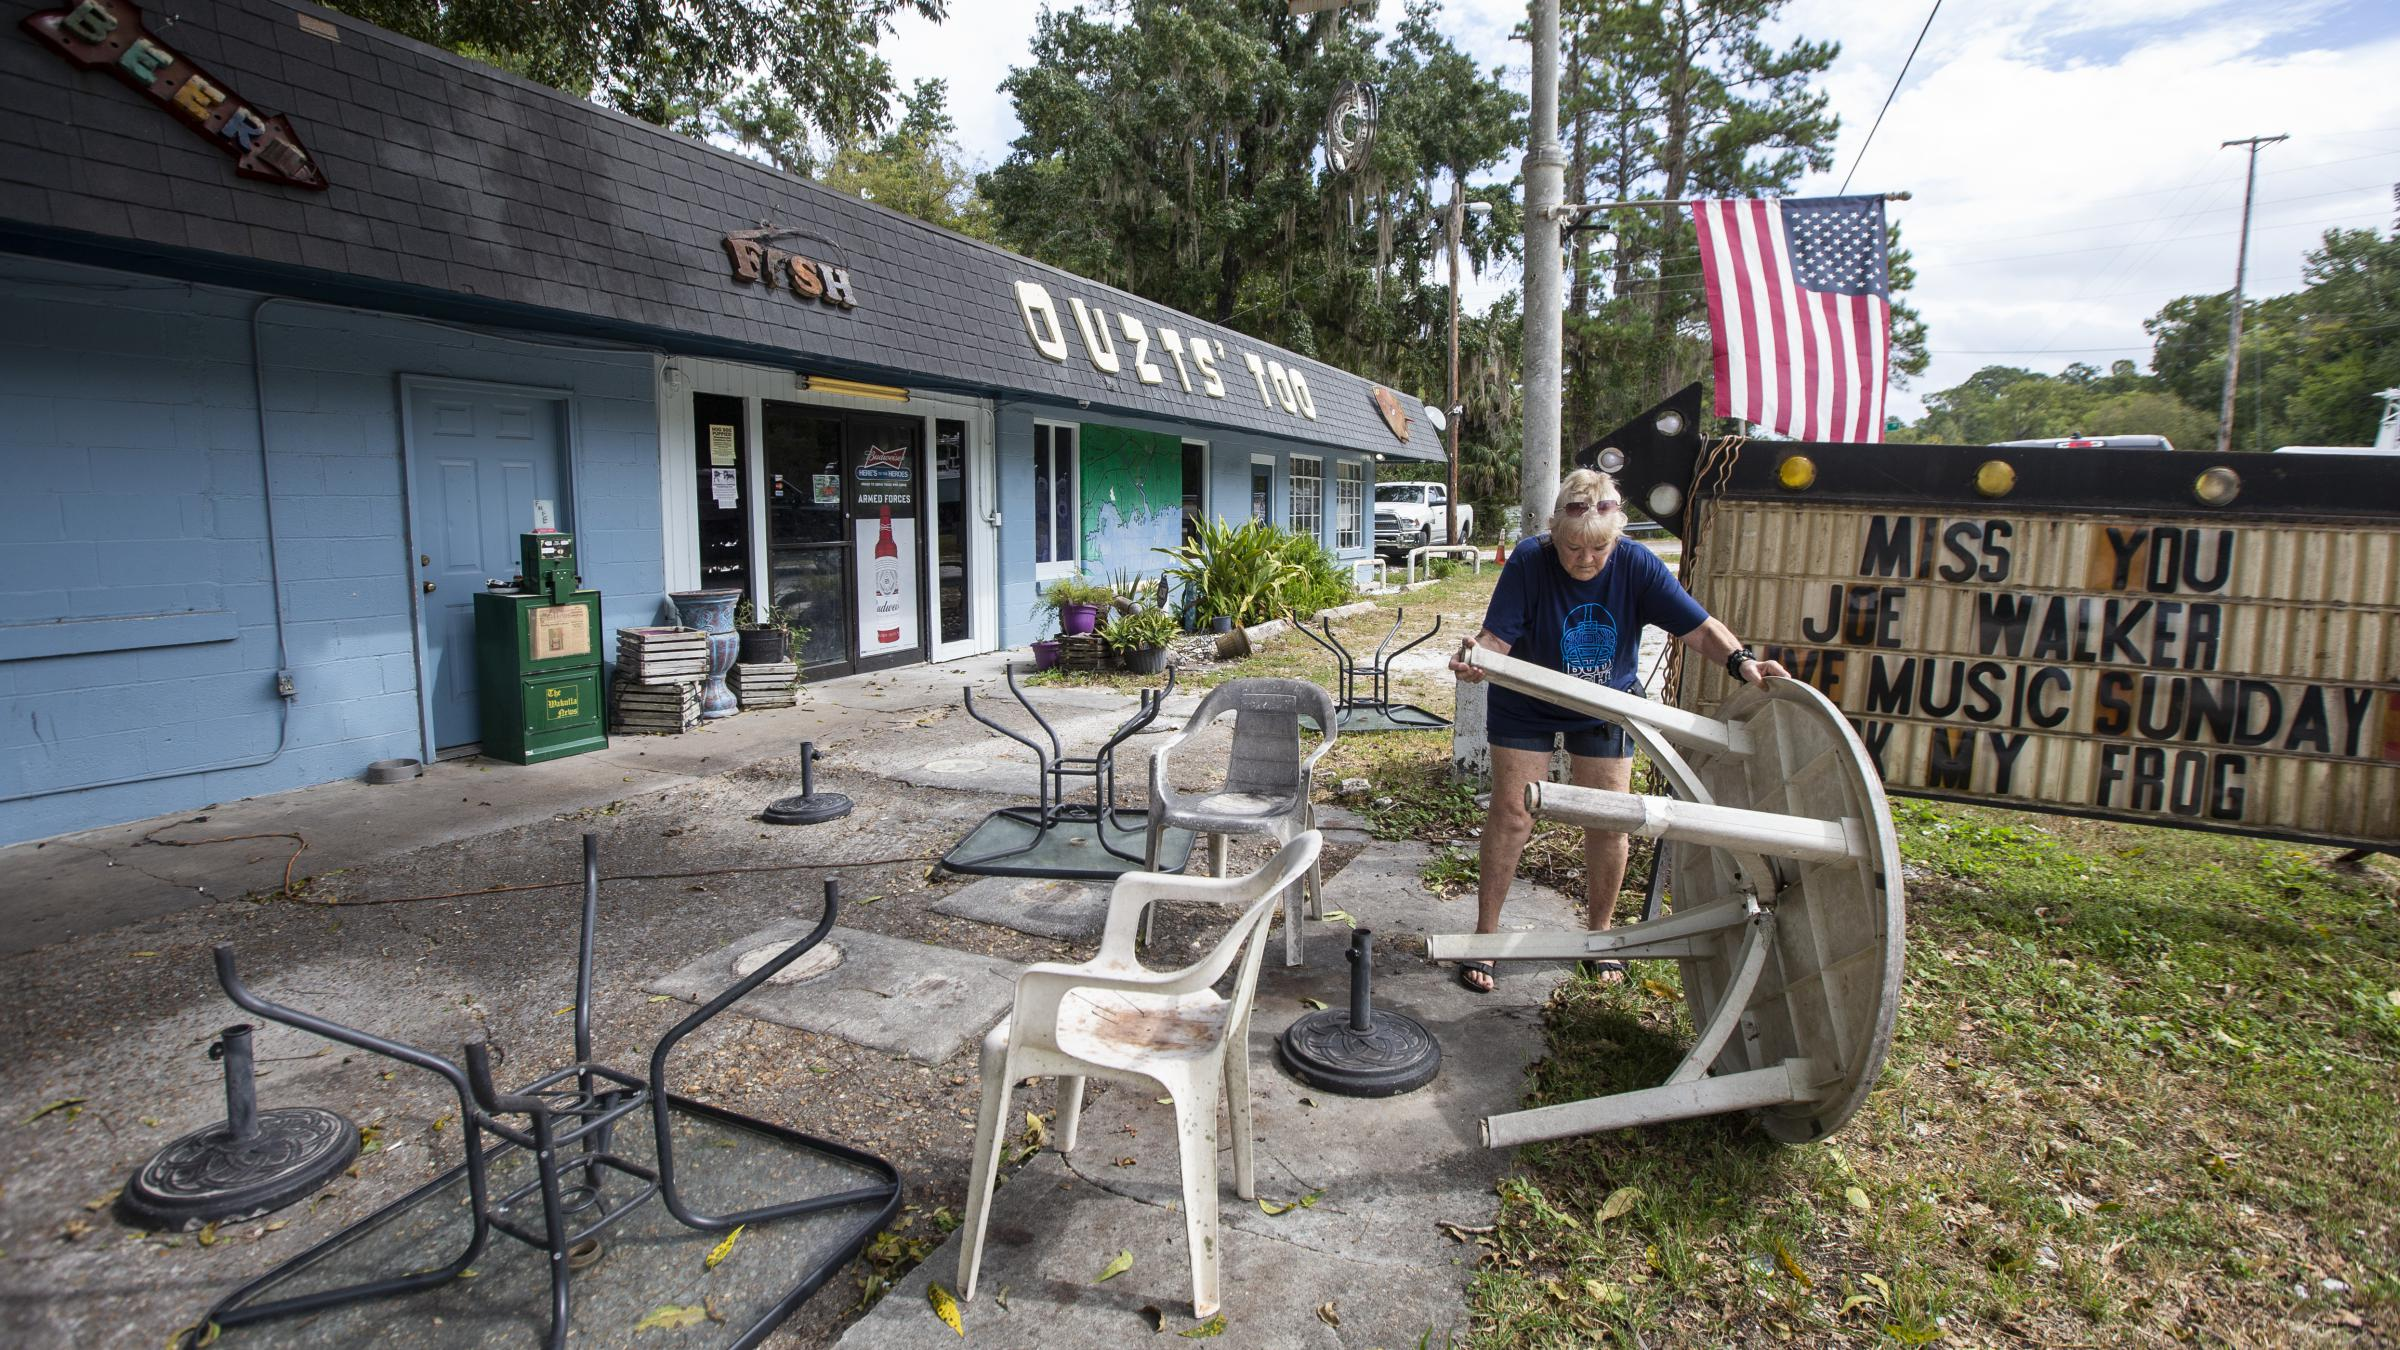 Hurricane Michael leaves trail of devastation in Florida